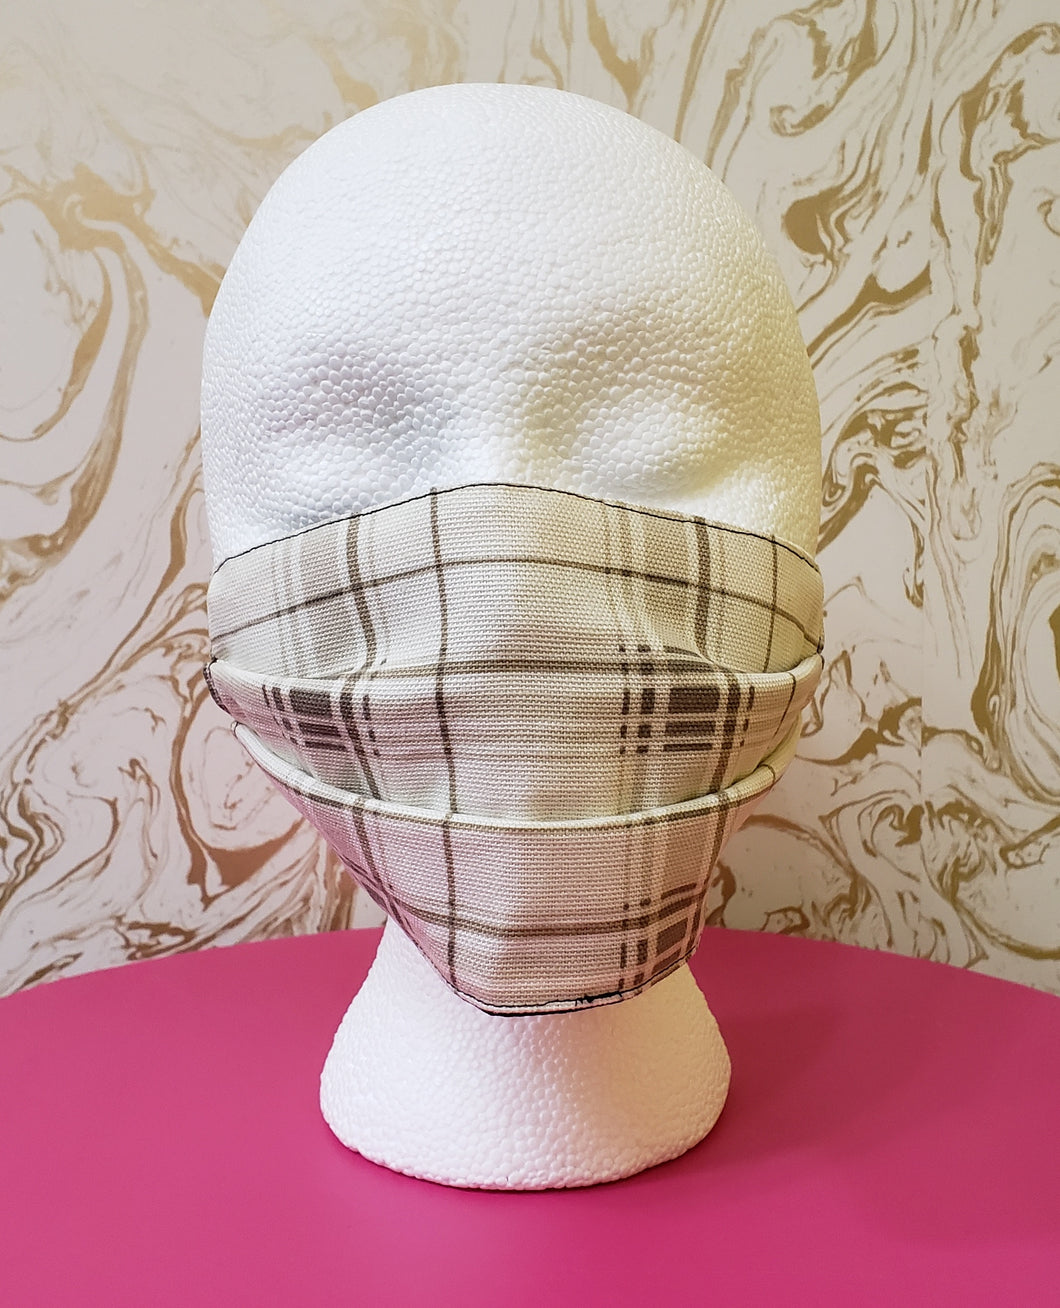 White & Tan Plaid Filtered Face Mask - 3 Layers with Built in Filter - Kids